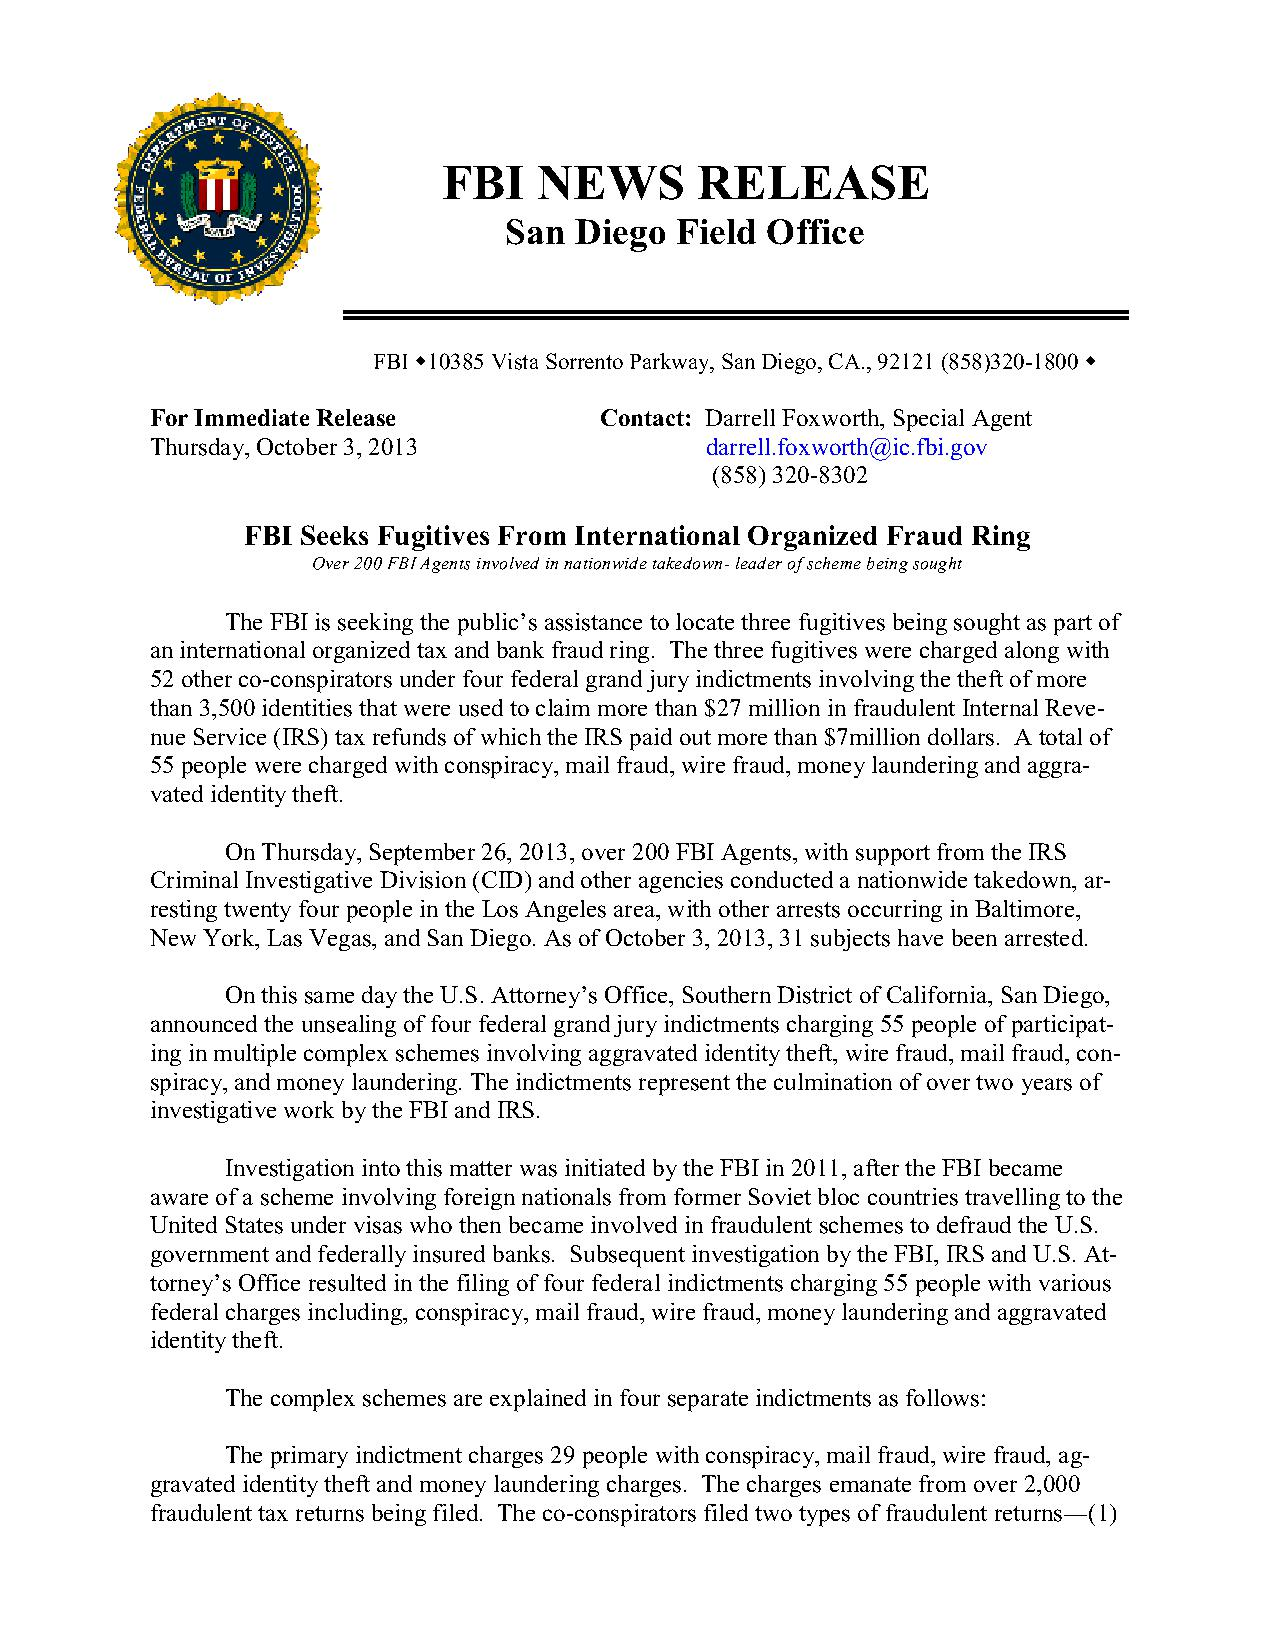 fbi fugitives_1